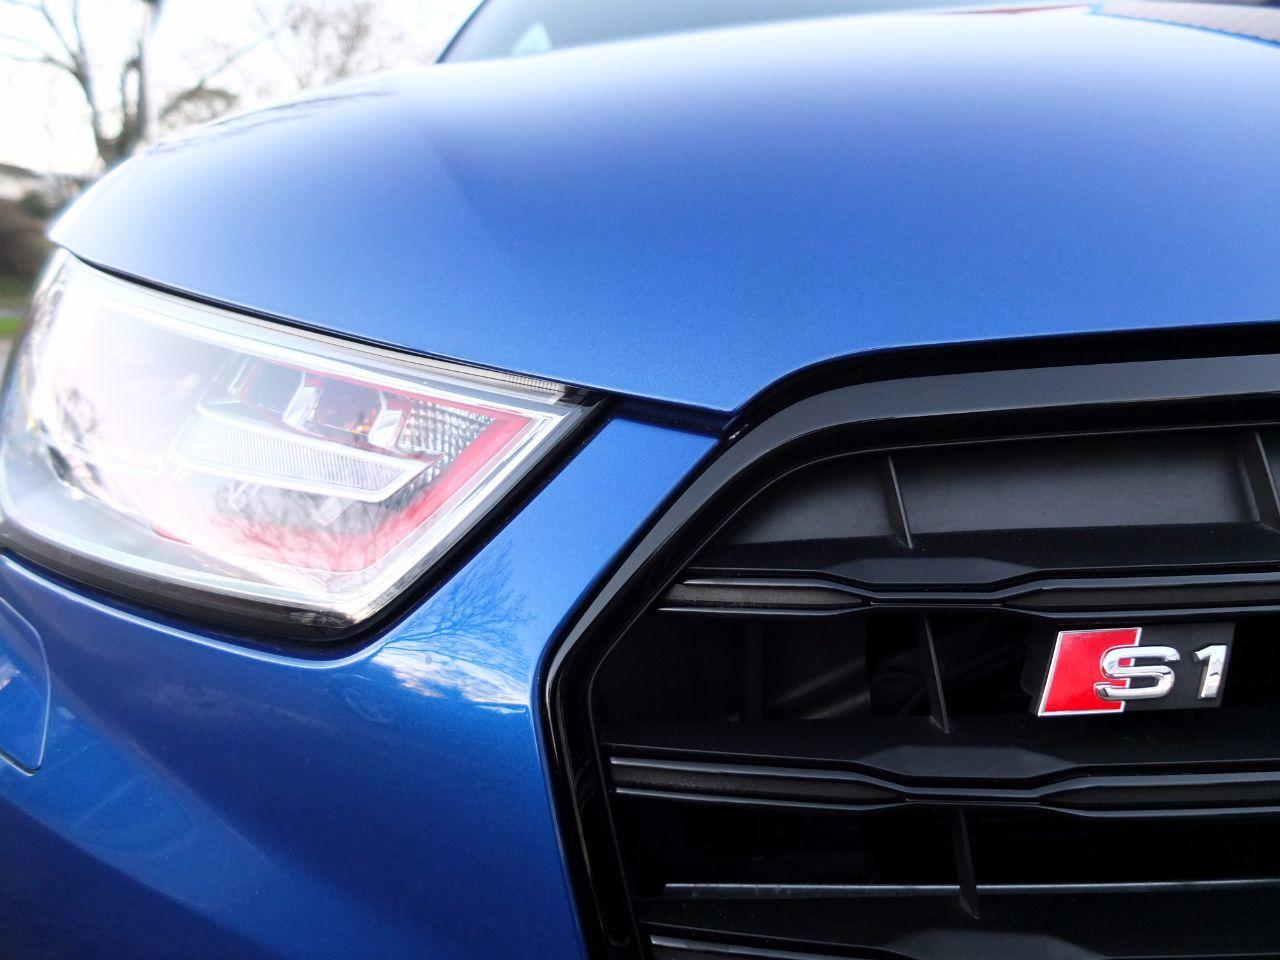 Audi A1 S1 2.0TFSI quattro 3 door 231ps Hatchback Petrol Sepang Blue Metallic